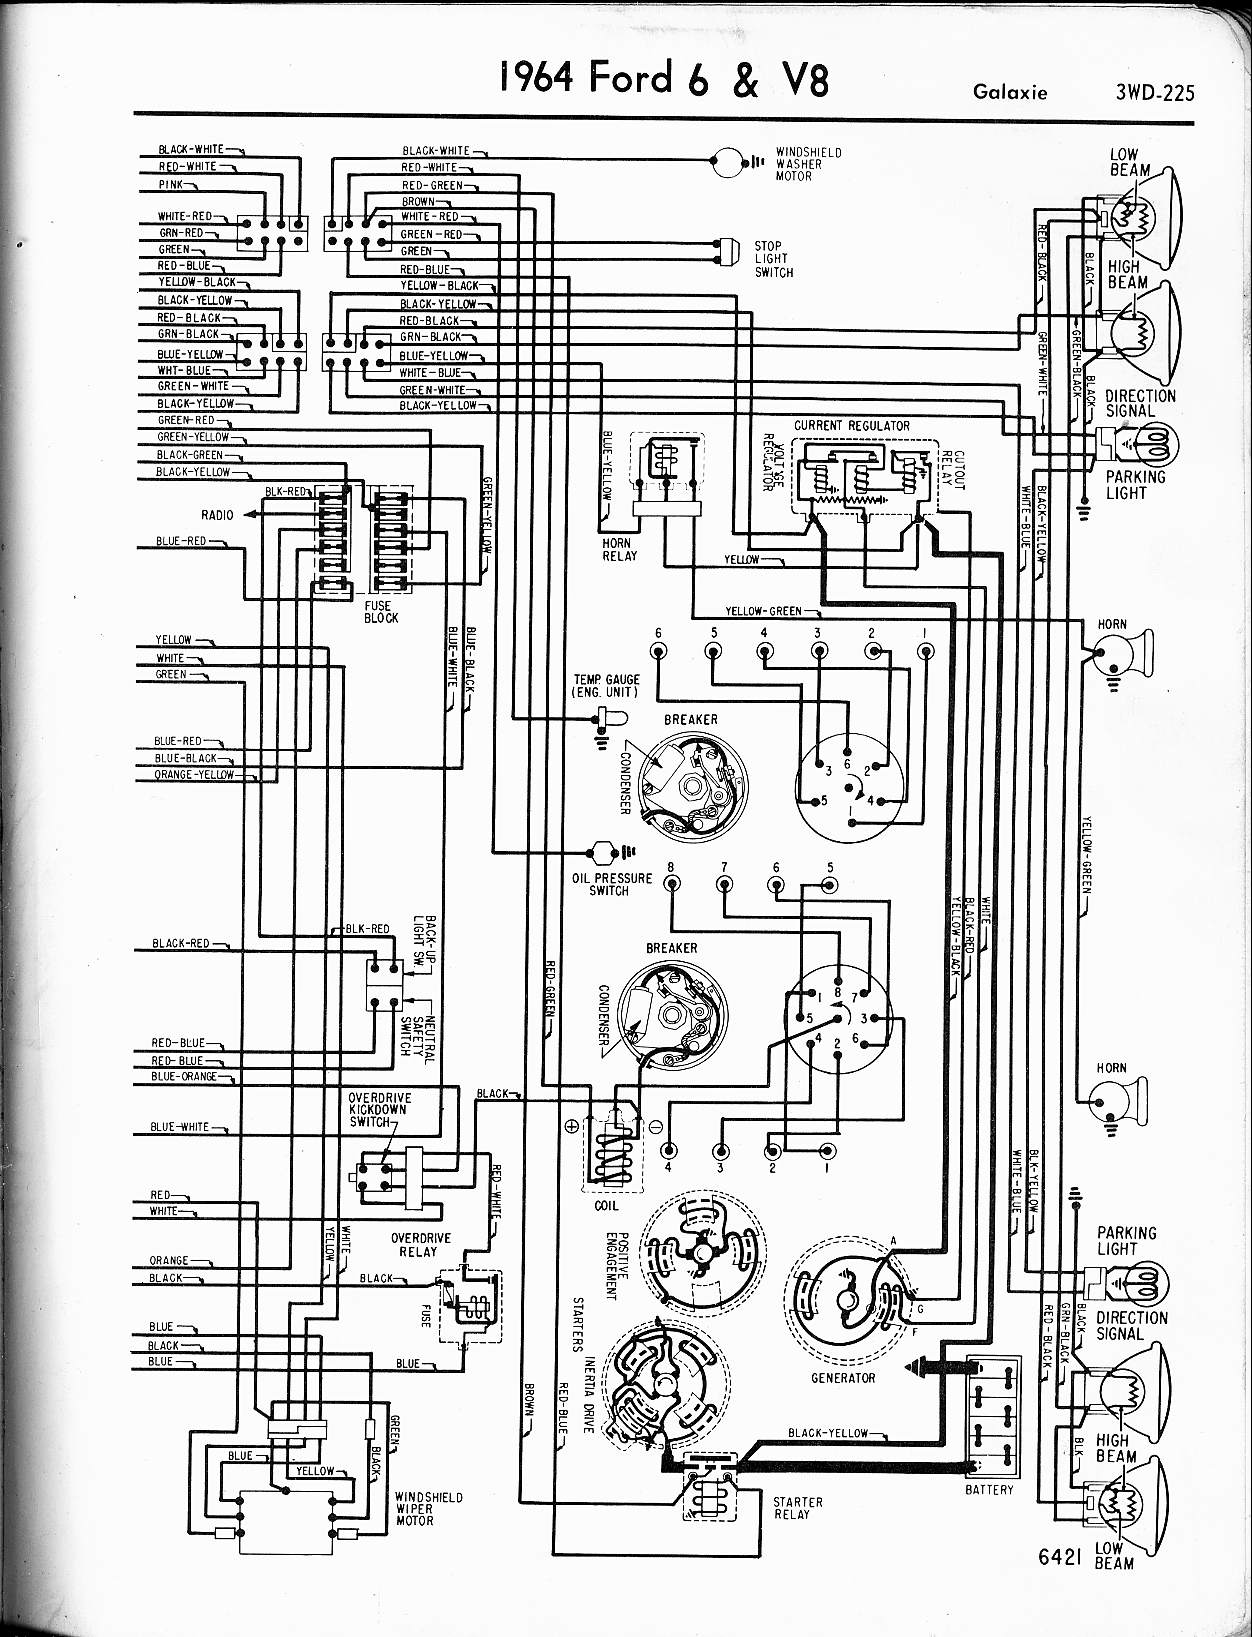 MWire5765 225 57 65 ford wiring diagrams 1964 ford falcon wiring diagram at suagrazia.org